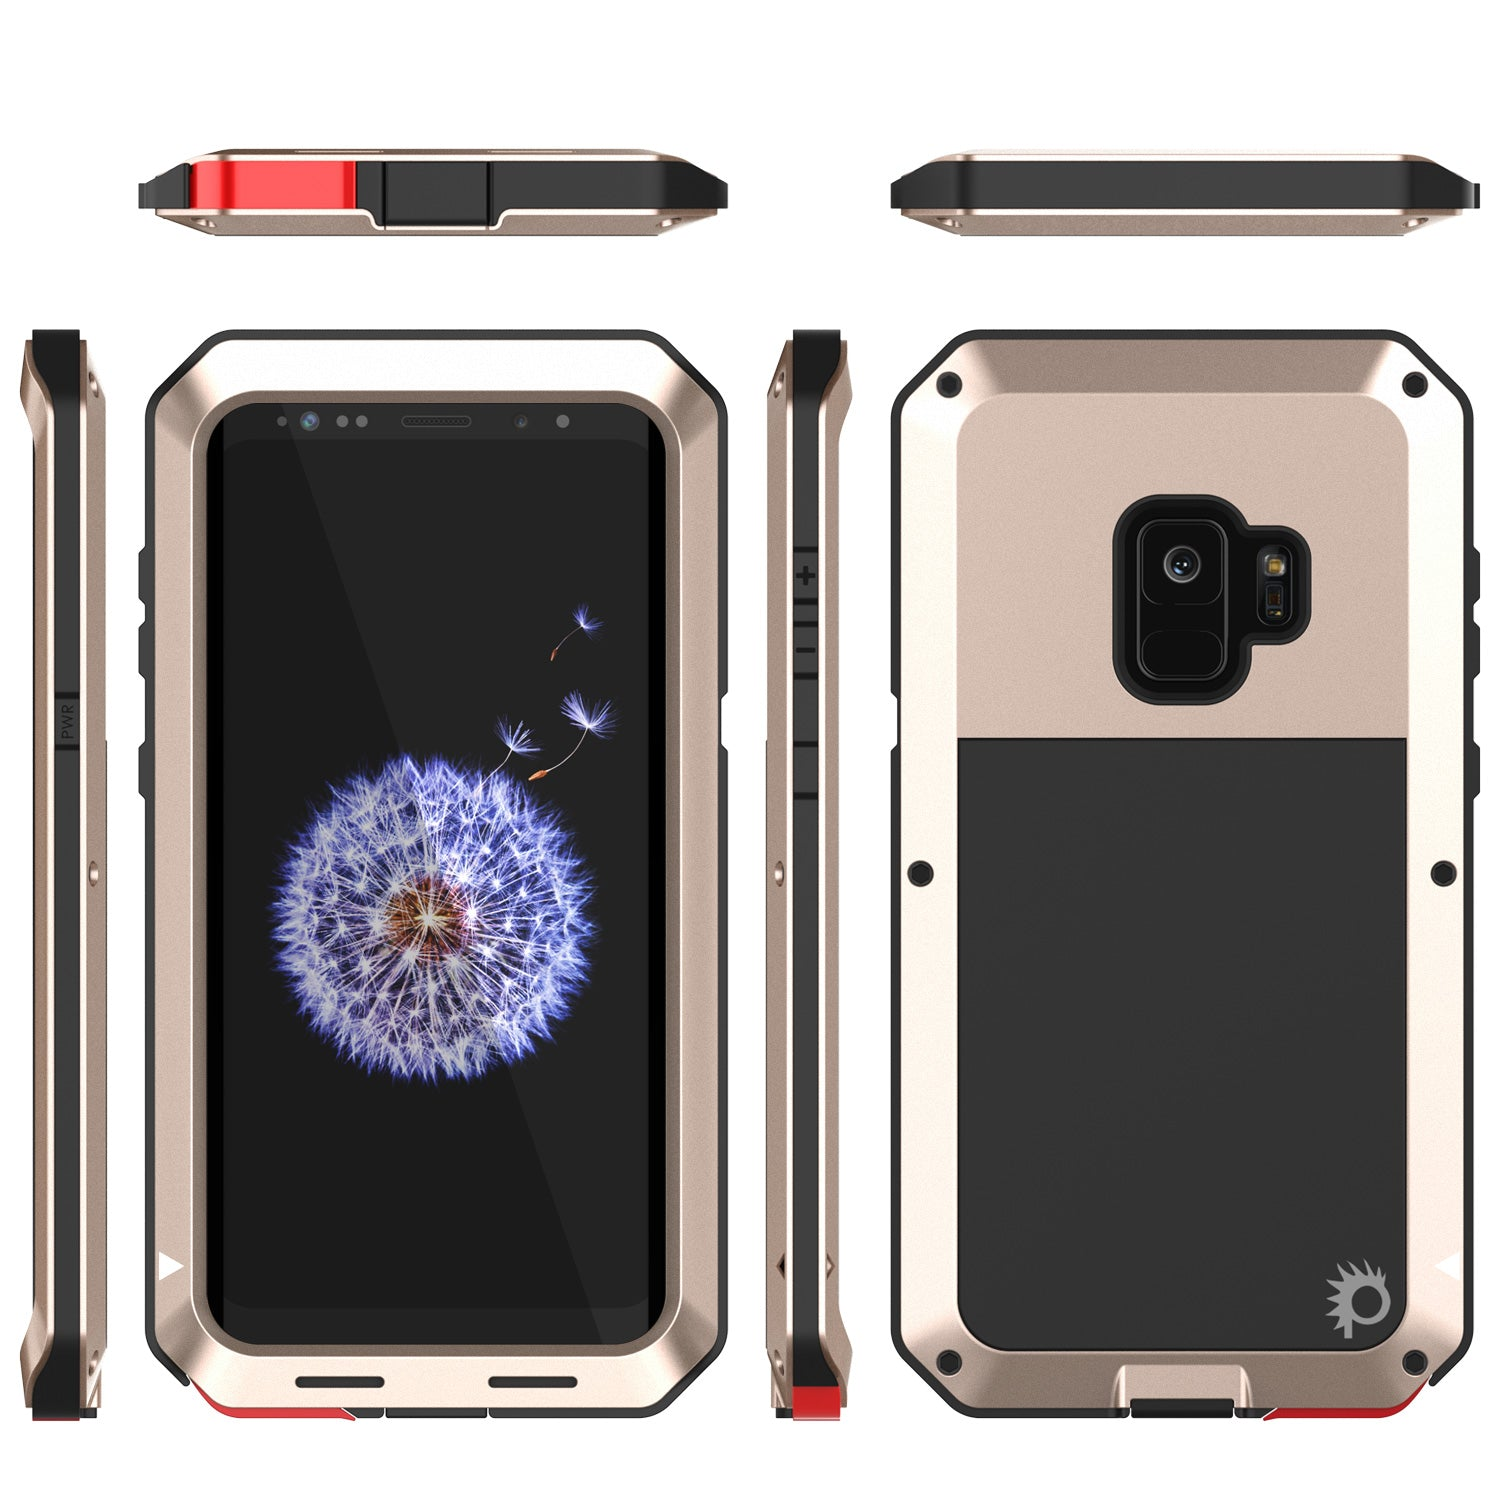 Galaxy S9 Metal Case, Heavy Duty Military Grade Rugged Armor Cover [Gold]